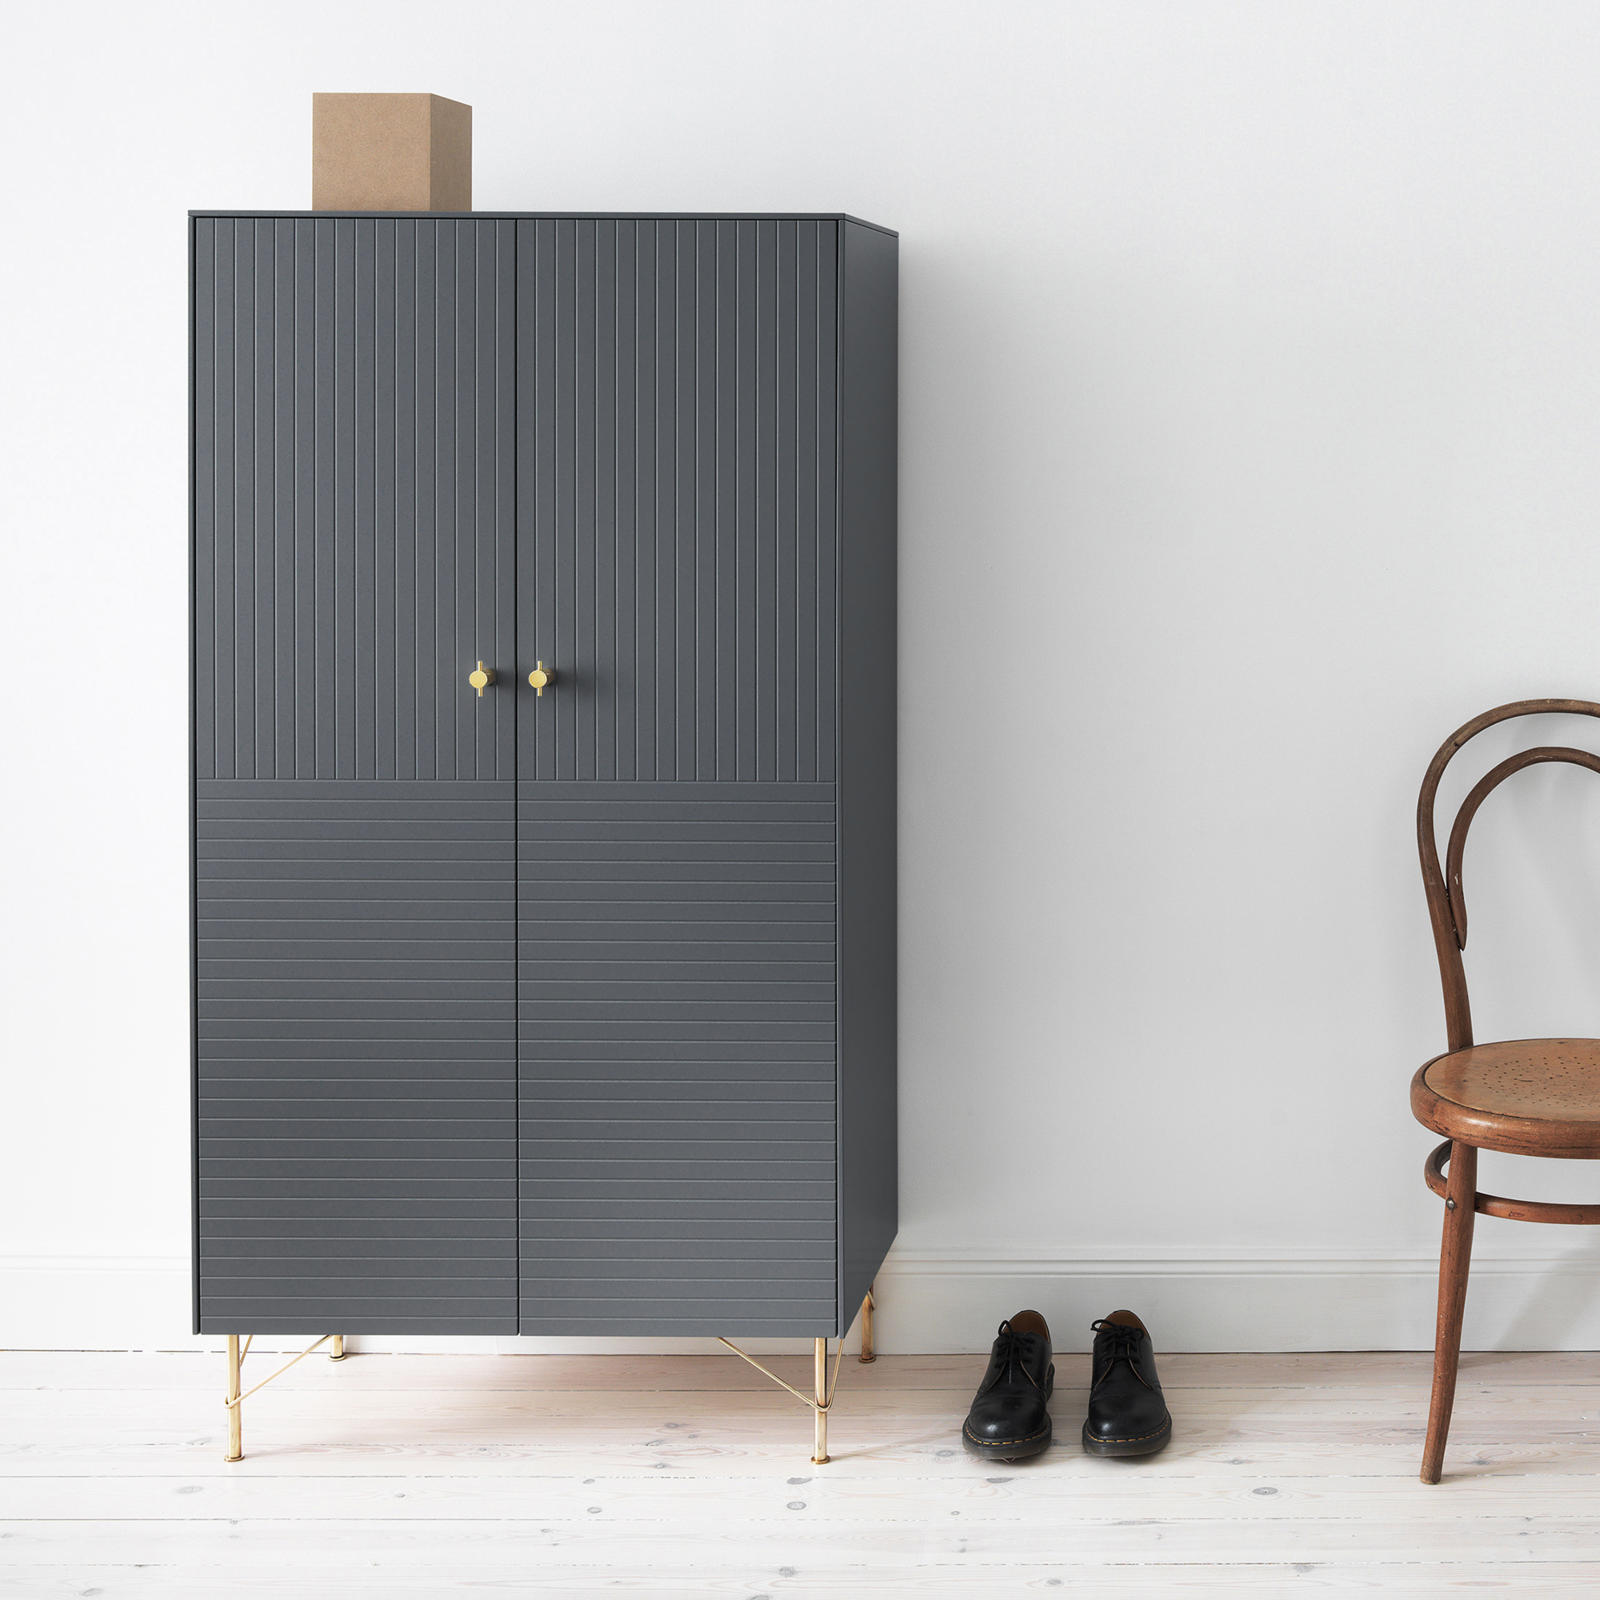 Grey cabinet with a pattern formed by vertical and horizontal lines, knobs and furniture legs in solid brass